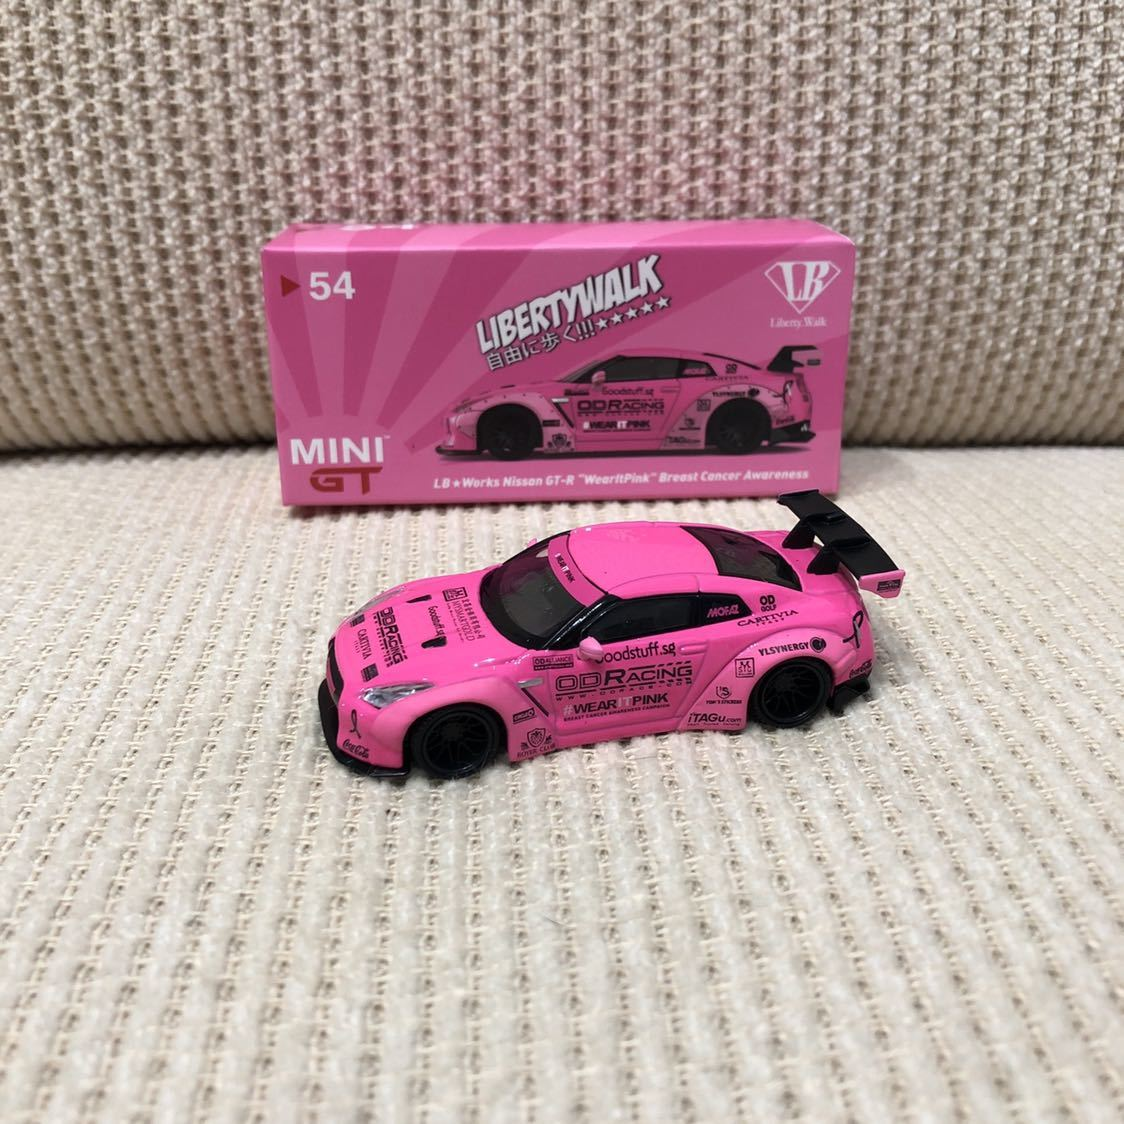 TSM MINI GT 1/64 リバティーウォーク ニッサン GT-R R35 Type1 Rear wing Ver.1 LB WORKS 限定 レア ピンク Pink MGT00054 マレーシア限定_画像2